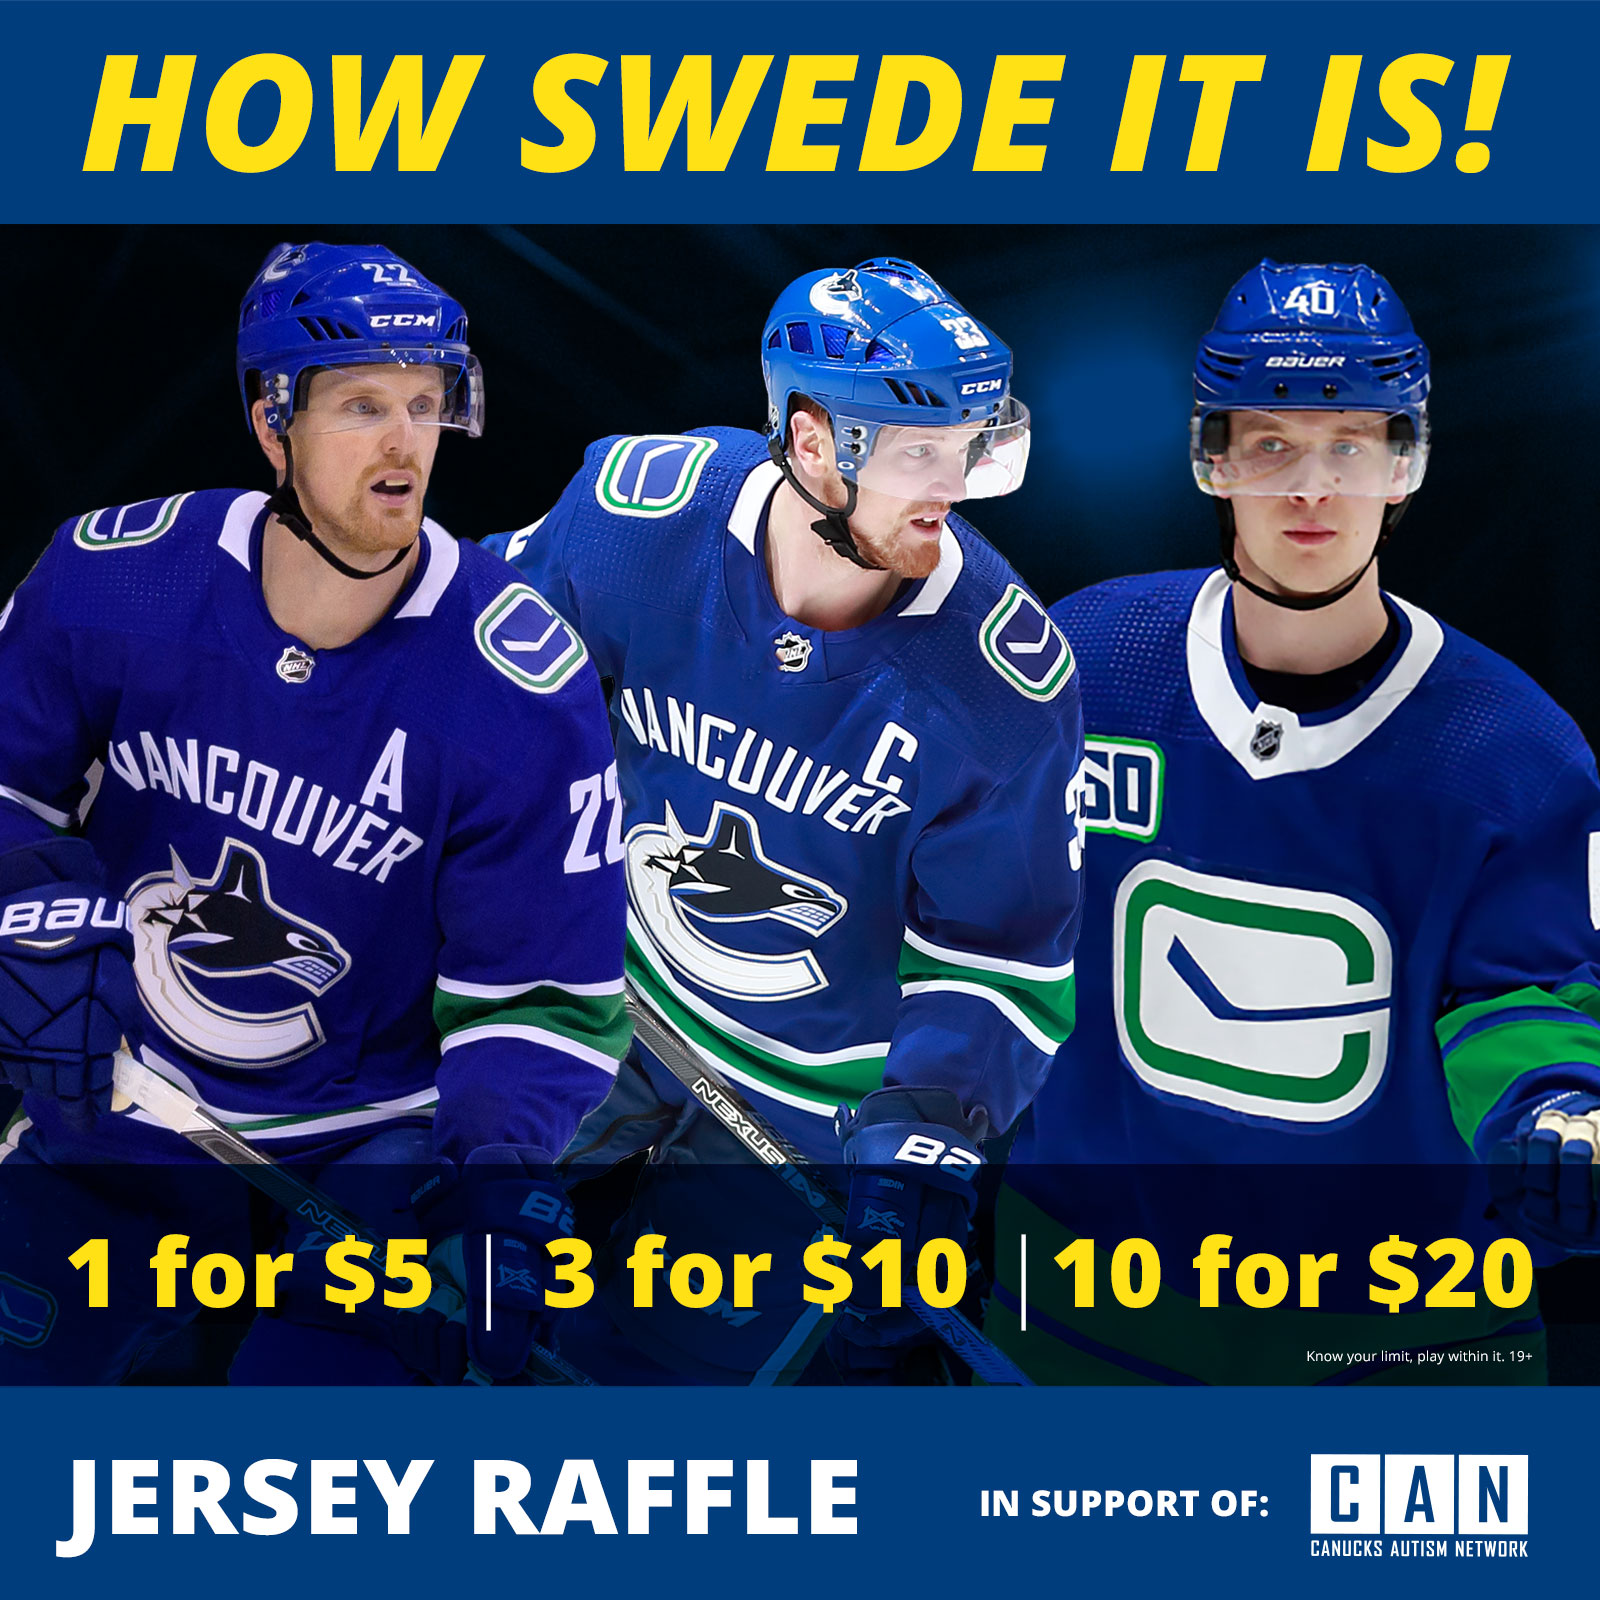 Canucks Autism Network | Signed Jersey Raffle